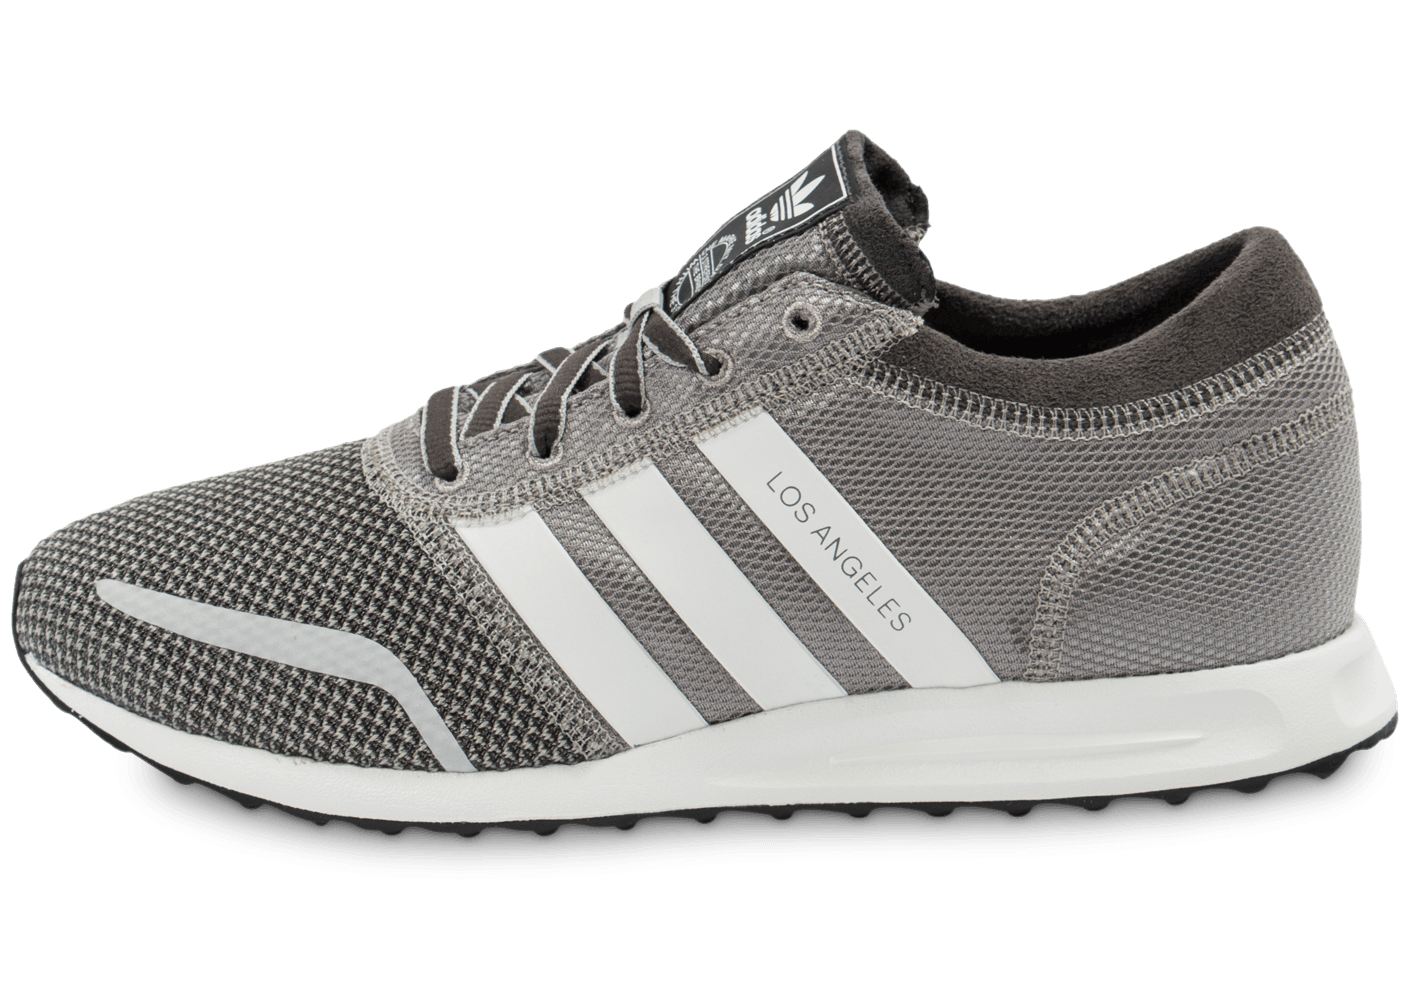 Adidas Los Angeles chaussures grise